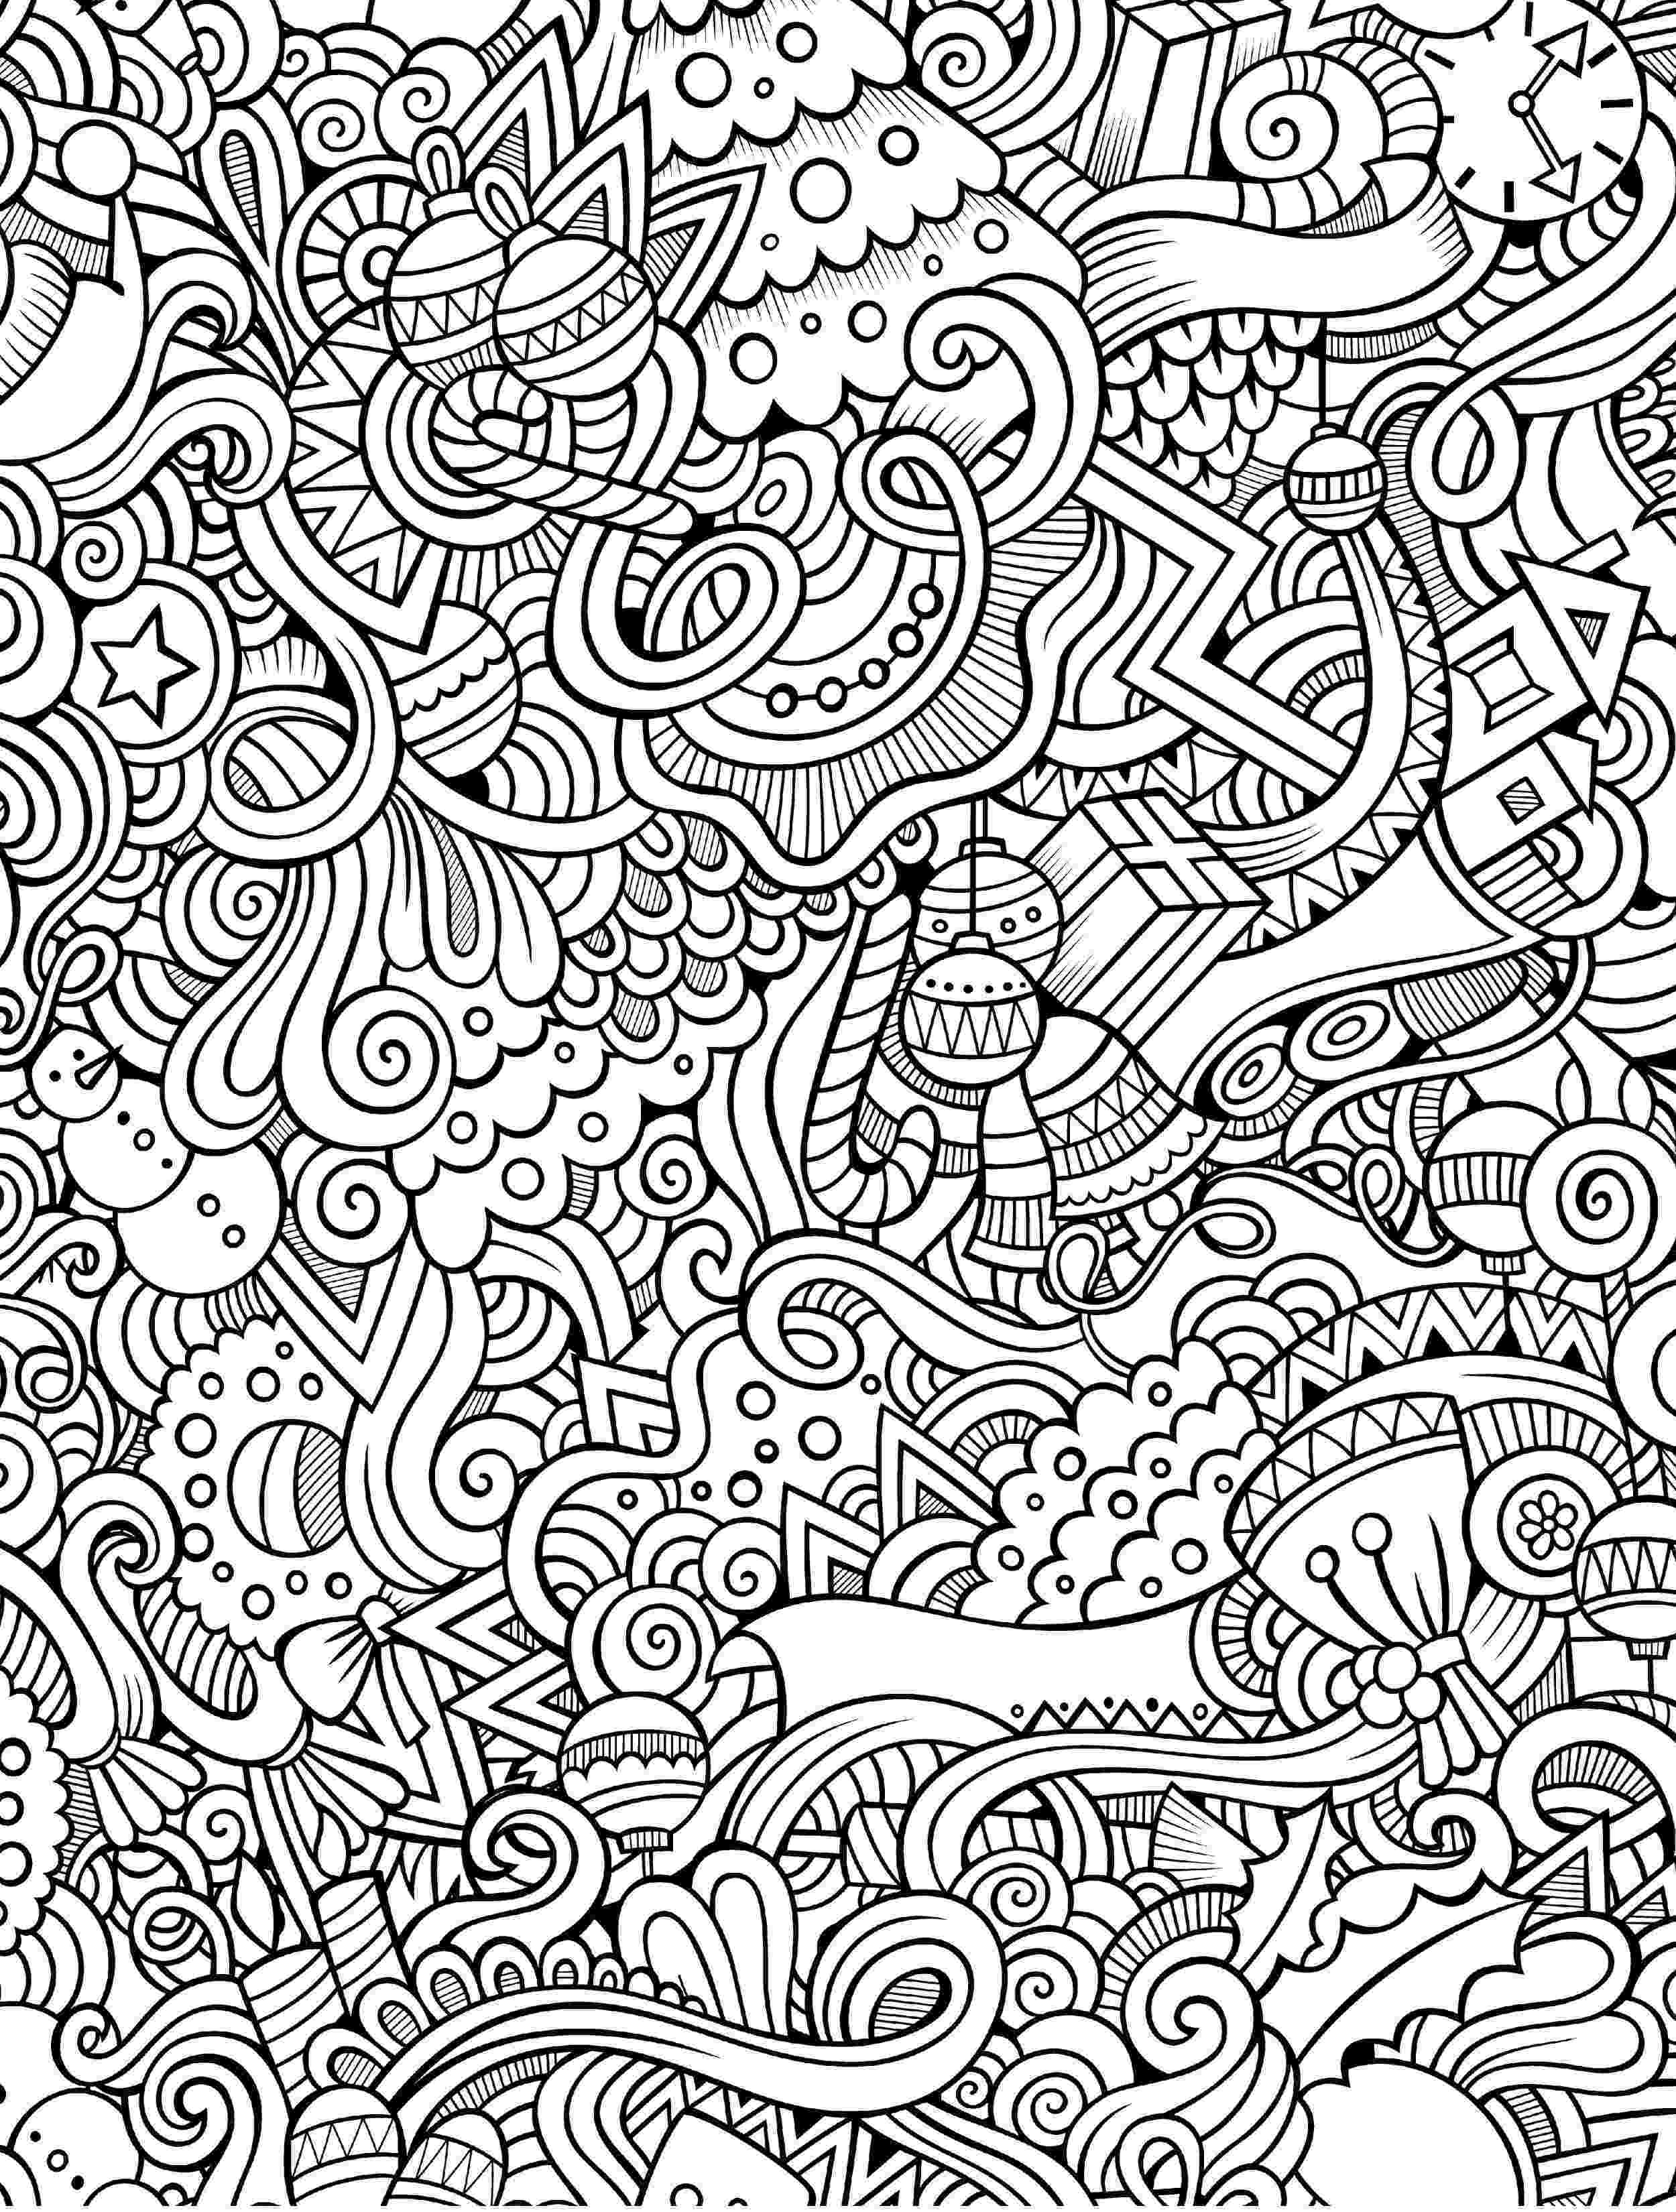 christmas colouring pages for adults printable 21 christmas printable coloring pages everythingetsycom christmas for adults colouring printable pages